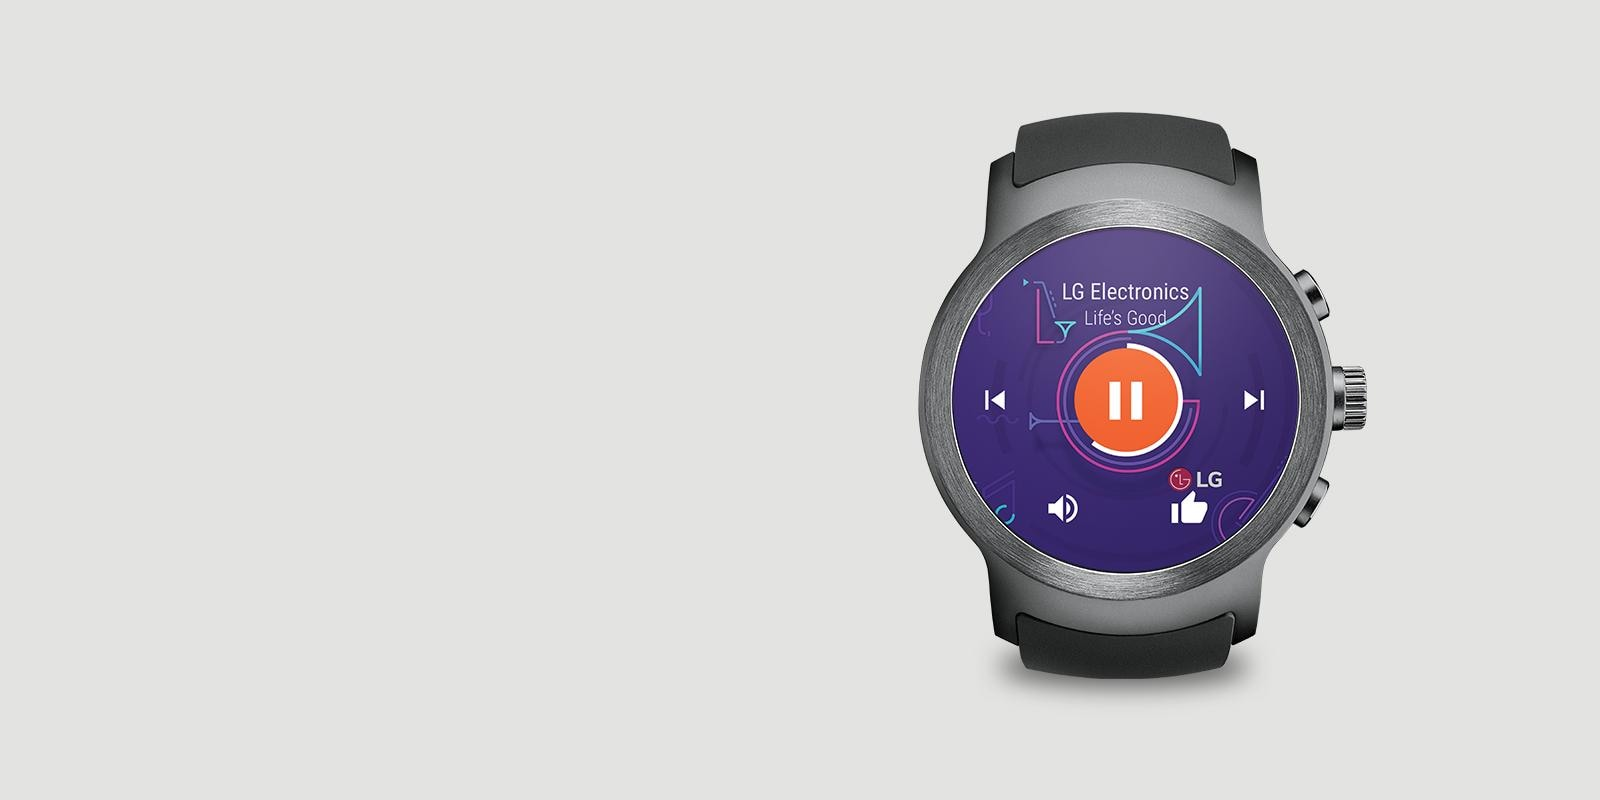 fastboot flash watch wear bootloader to on a how image android watches mode unlocked install via firmware os